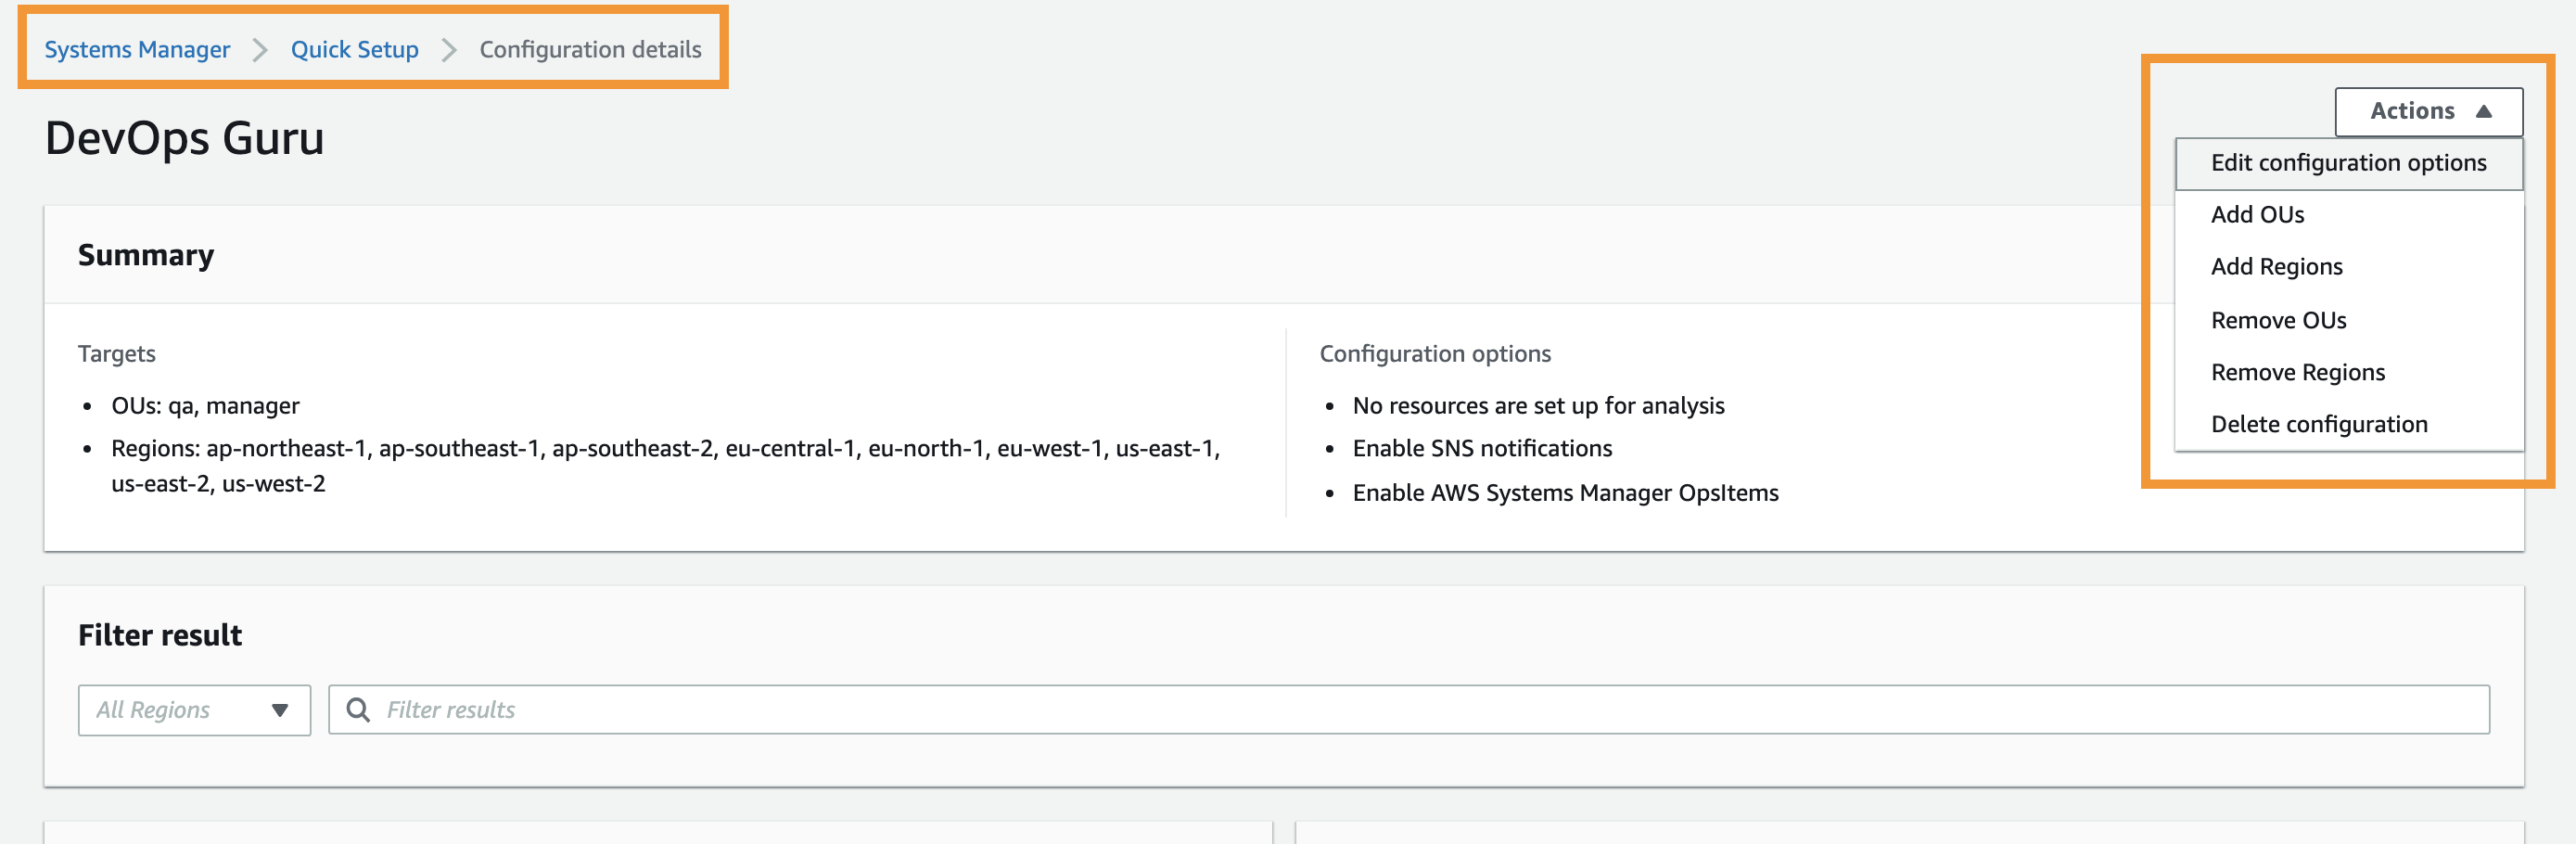 The Configuration details page displays a summary of the target OUs and regions. It also displays the configuration options you have chosen when you created the configuration. From this page, you can edit the configuration by editing the target OUs and regions